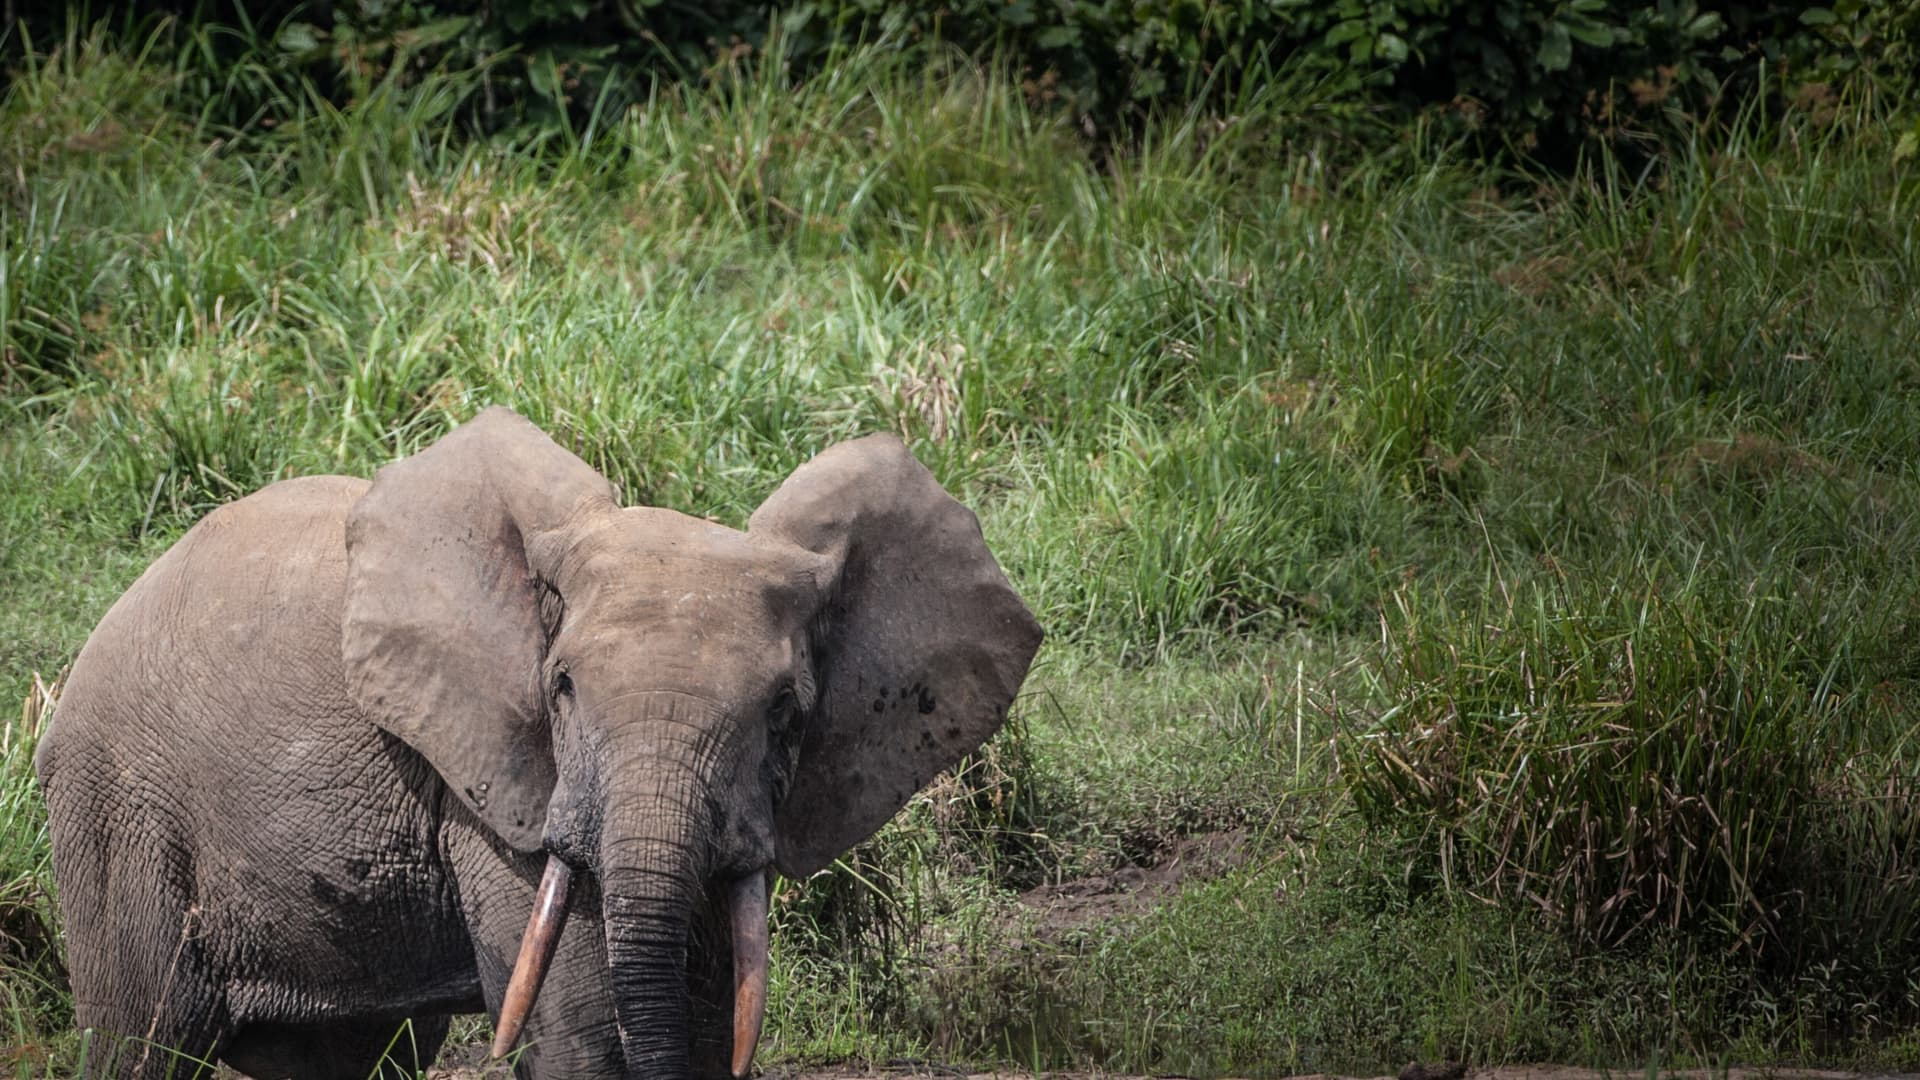 An African forest elephant is seen in Ivindo National Park on April 26, 2019.